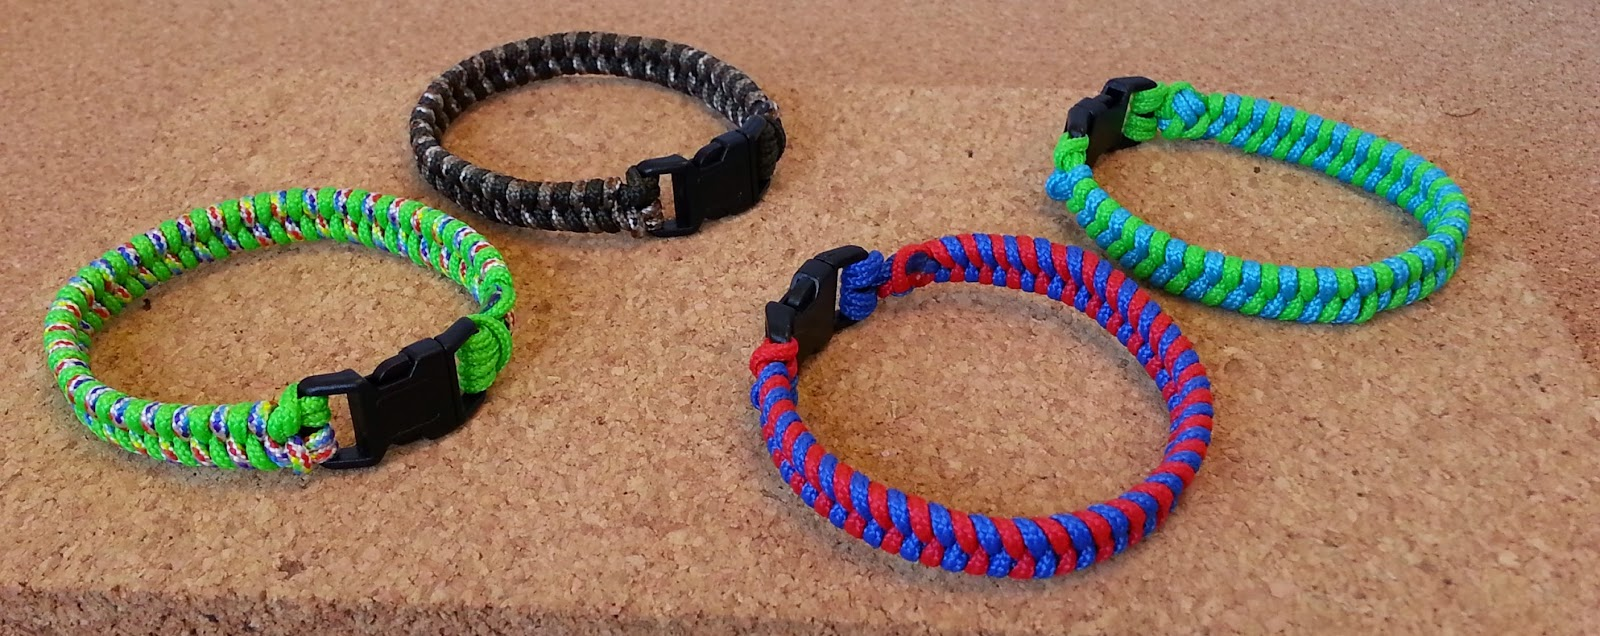 Parachute Cord Suvival Bracelets - Image courtesy of Hands On Crafts for Kids